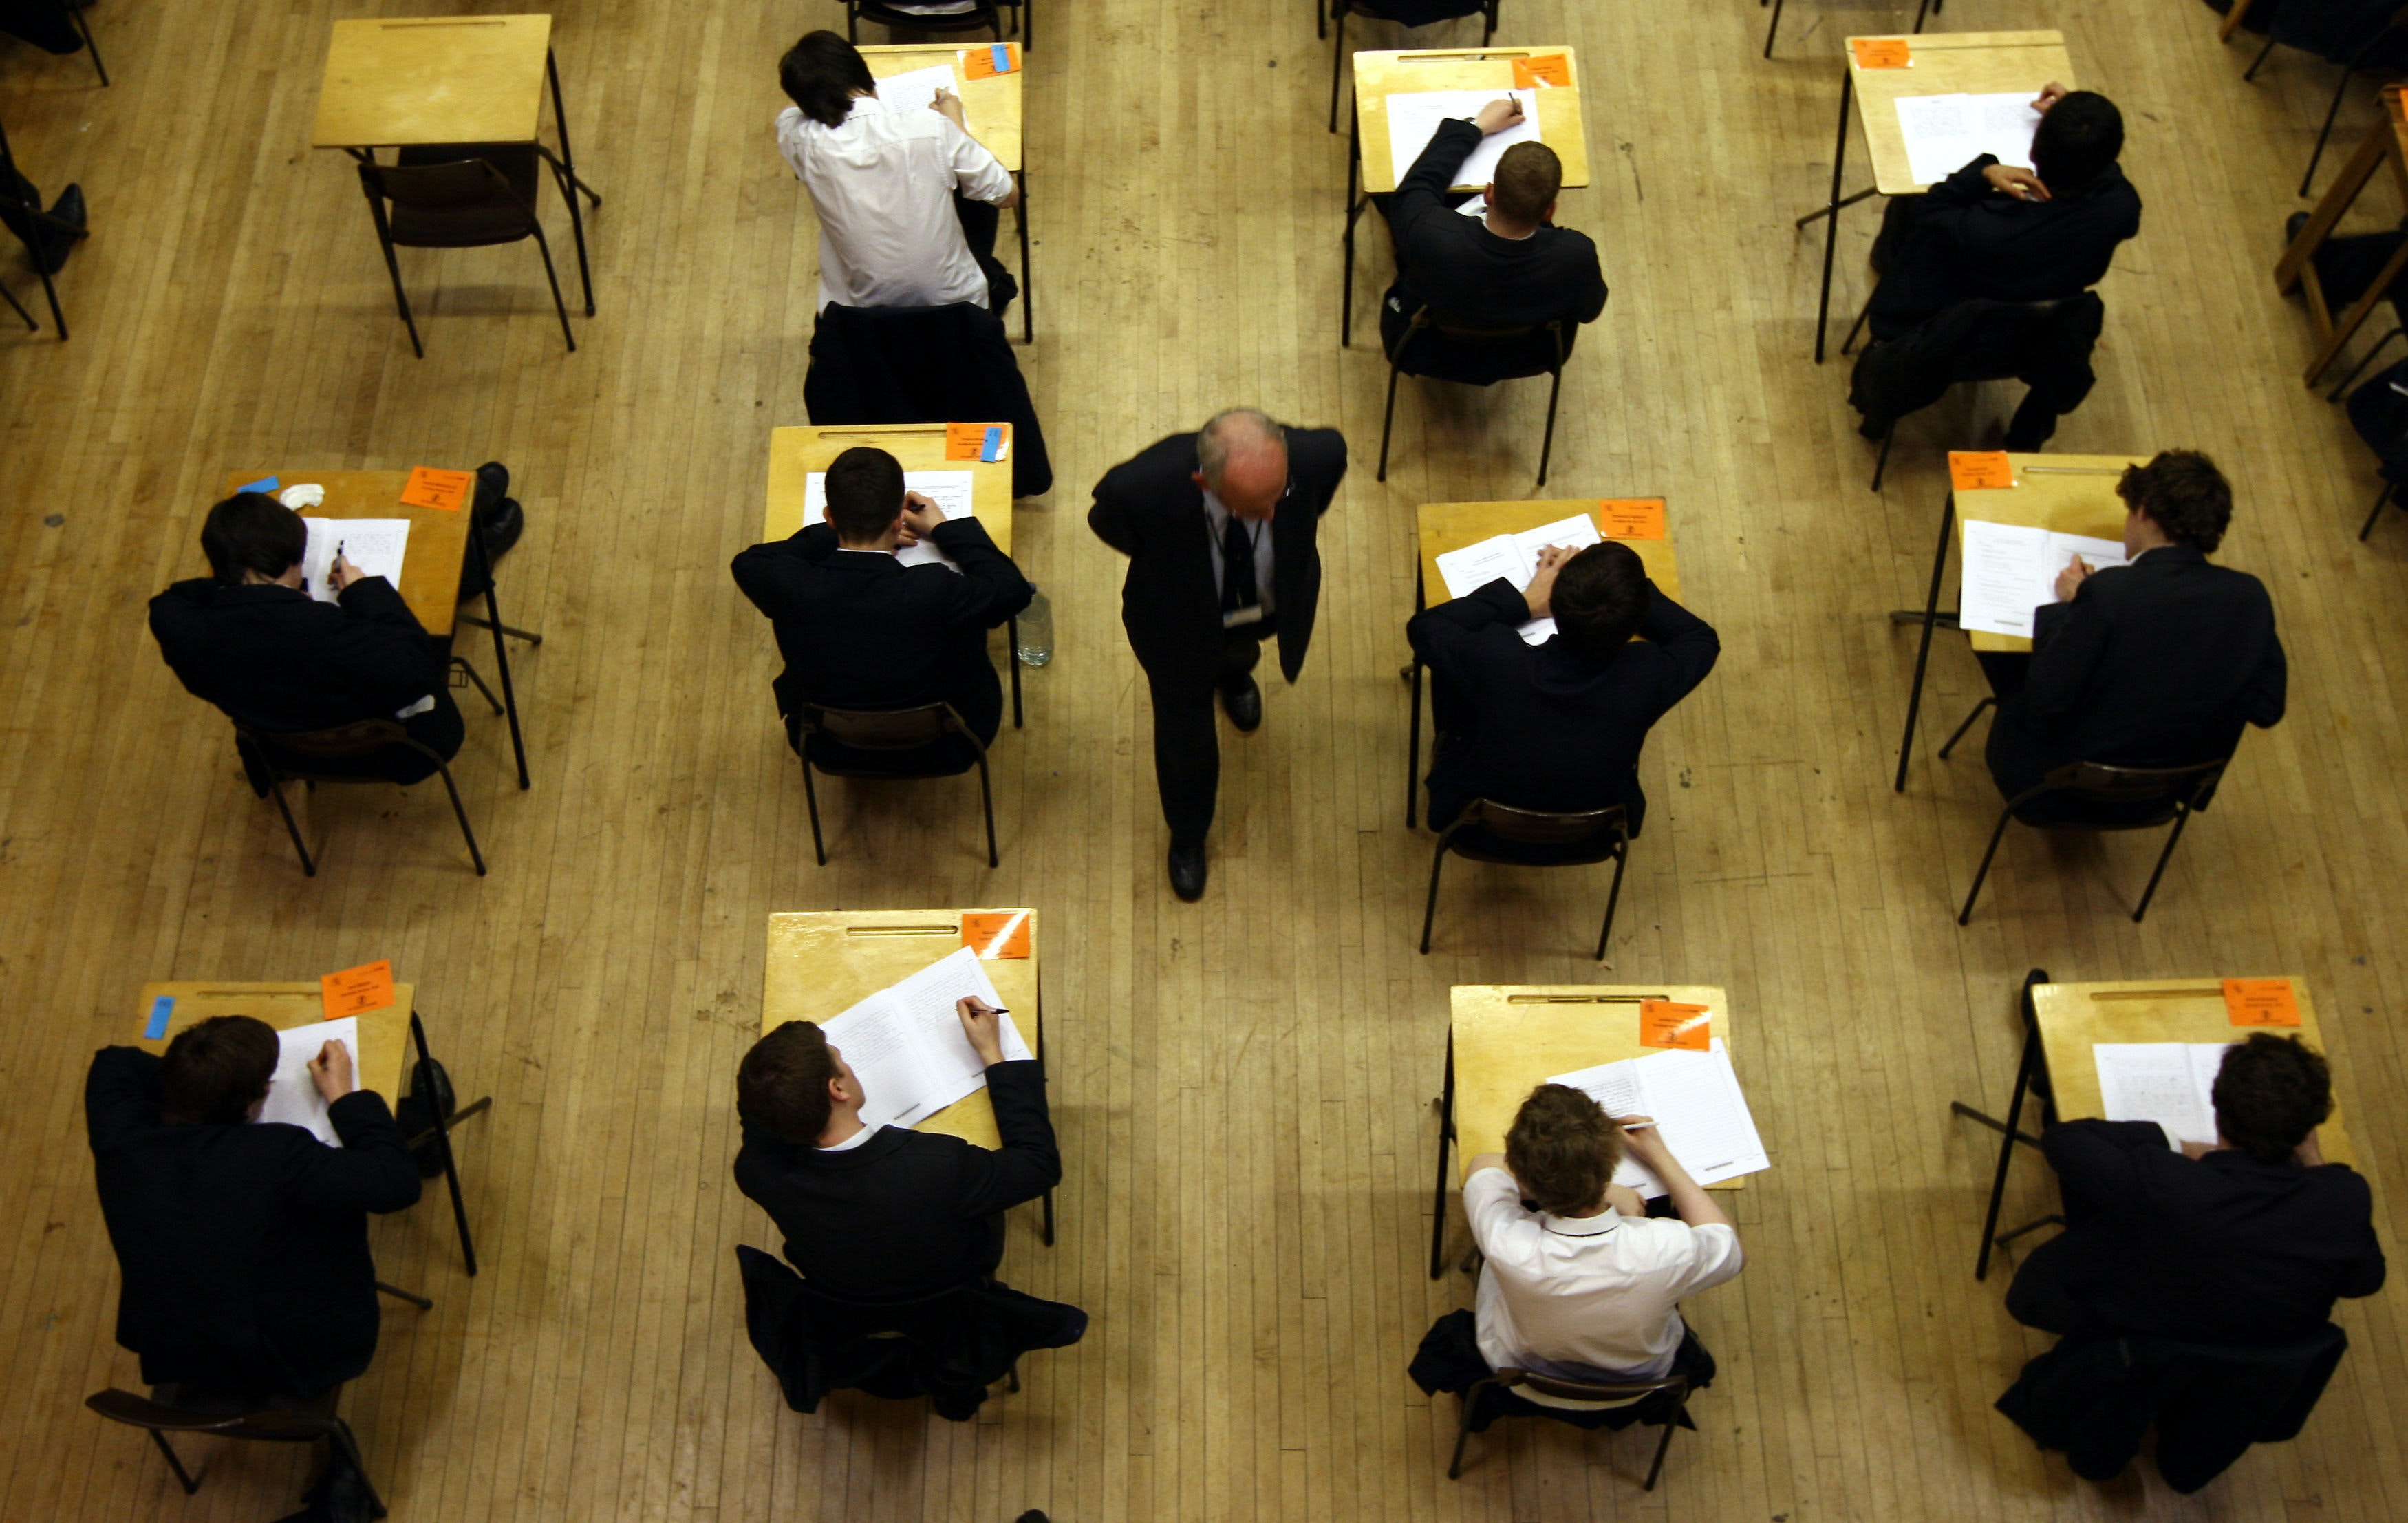 Grammars receive £50m boost, while primary and secondary schools rely on cash donations from parents